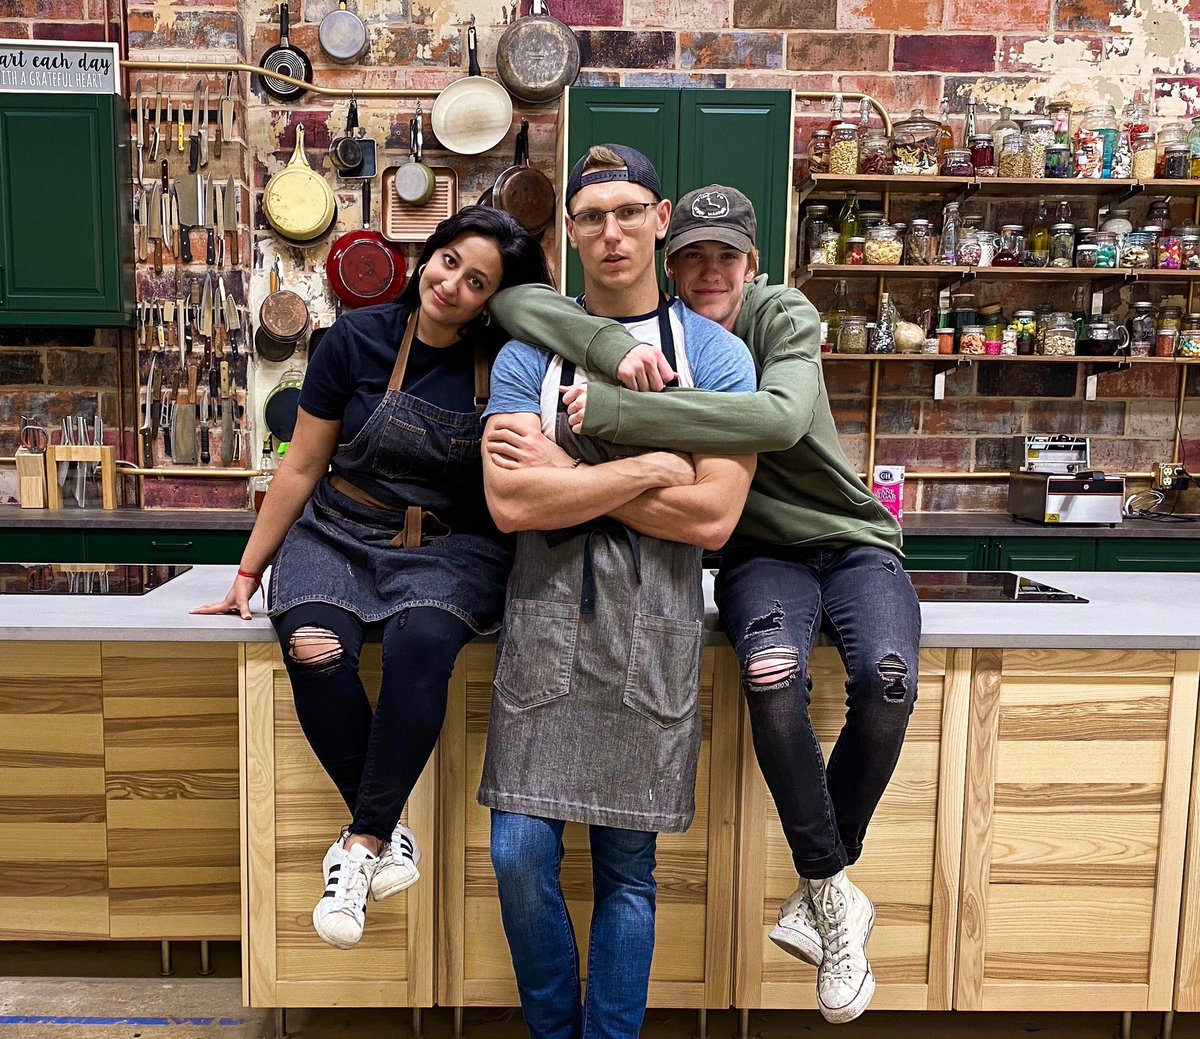 The Mythical Kitchen Staff posing in their studio